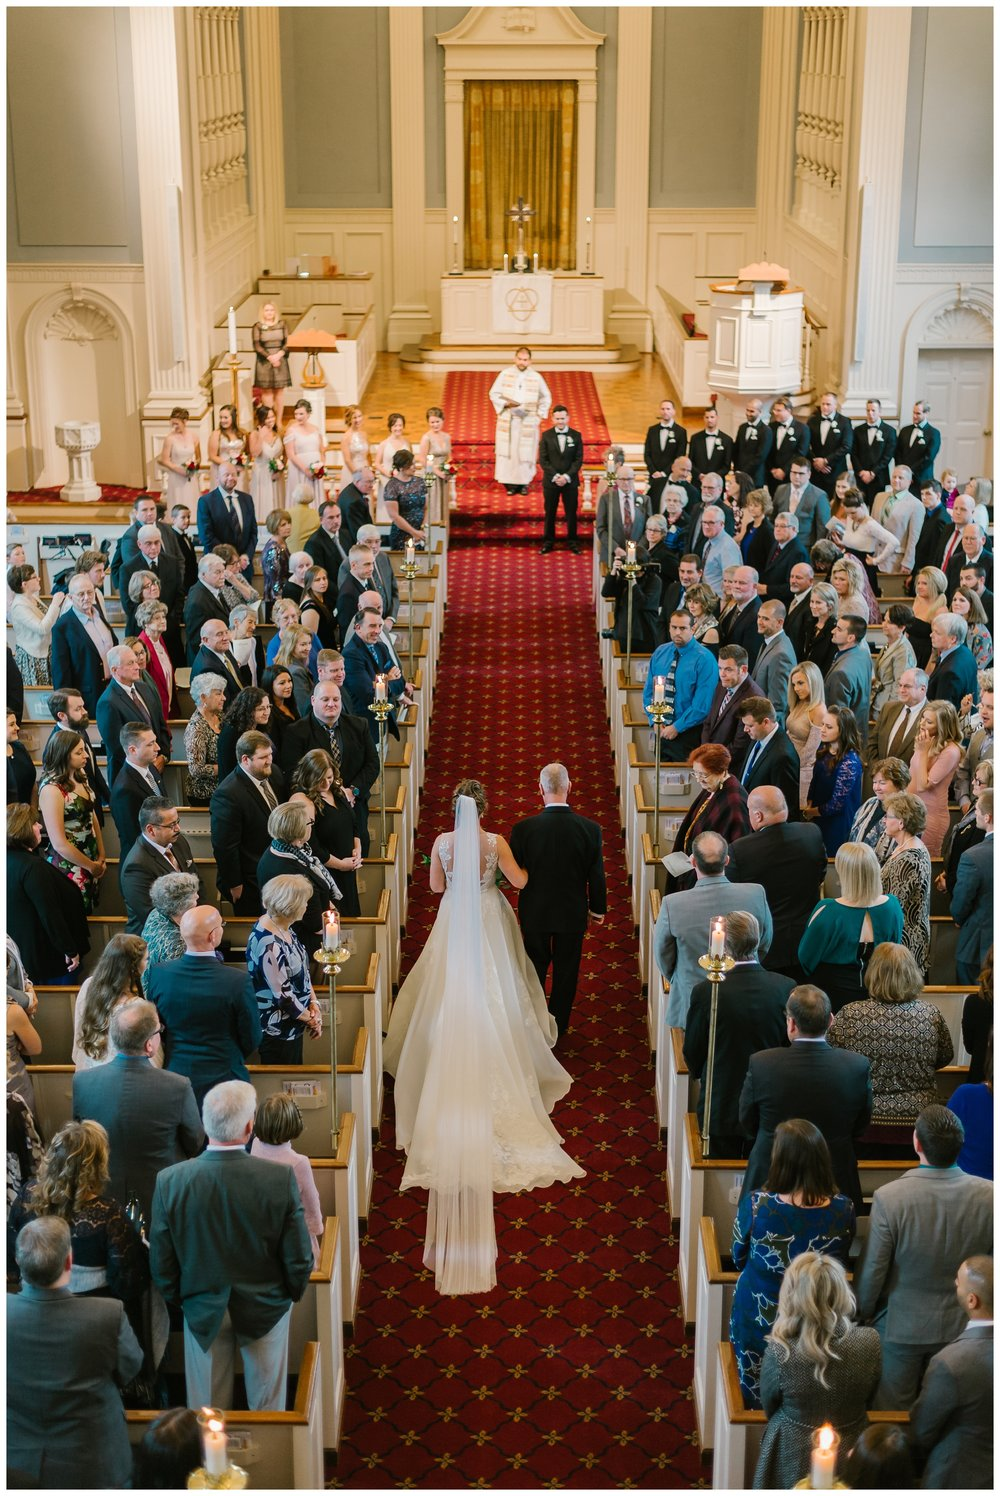 Rebecca_Shehorn_Photography_Indianapolis_Wedding_Photographer_7743.jpg